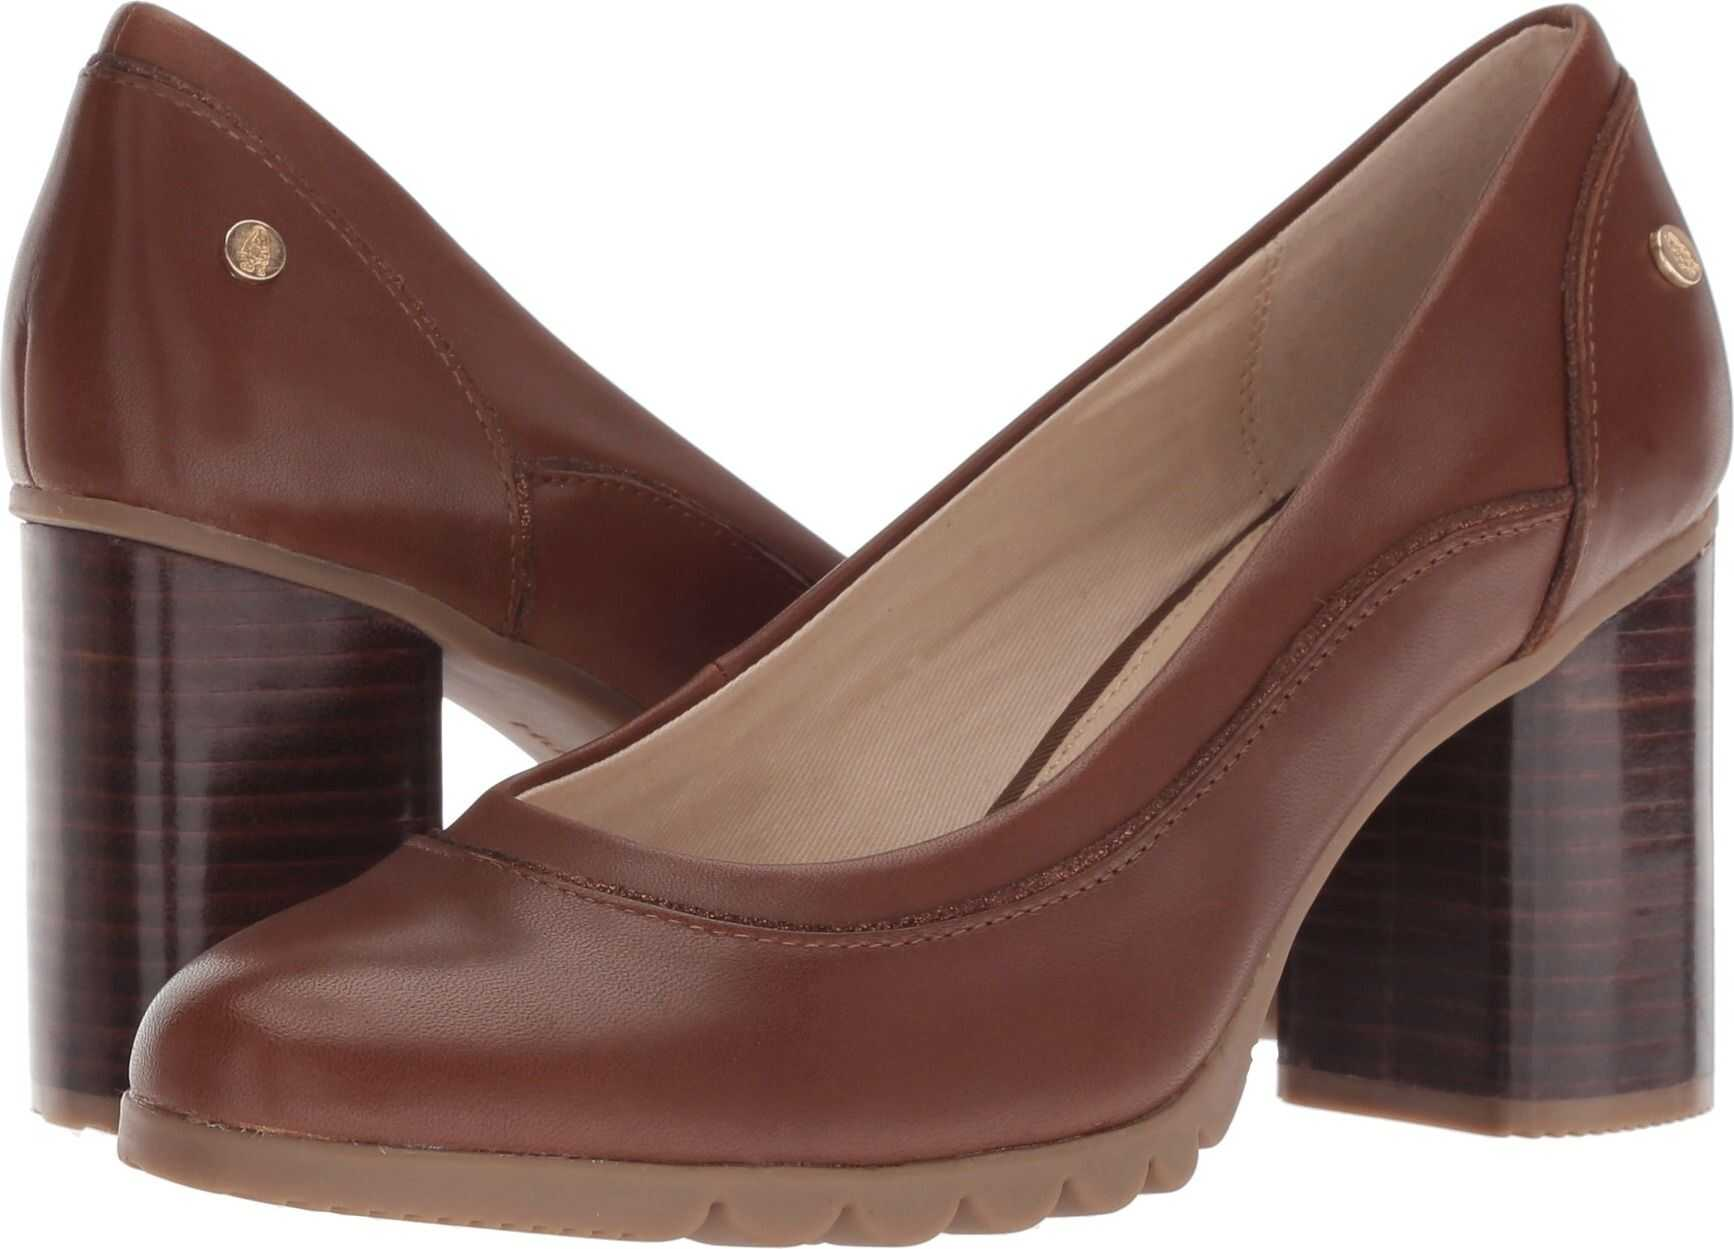 Hush Puppies Spaniel Pump Dachshund Leather